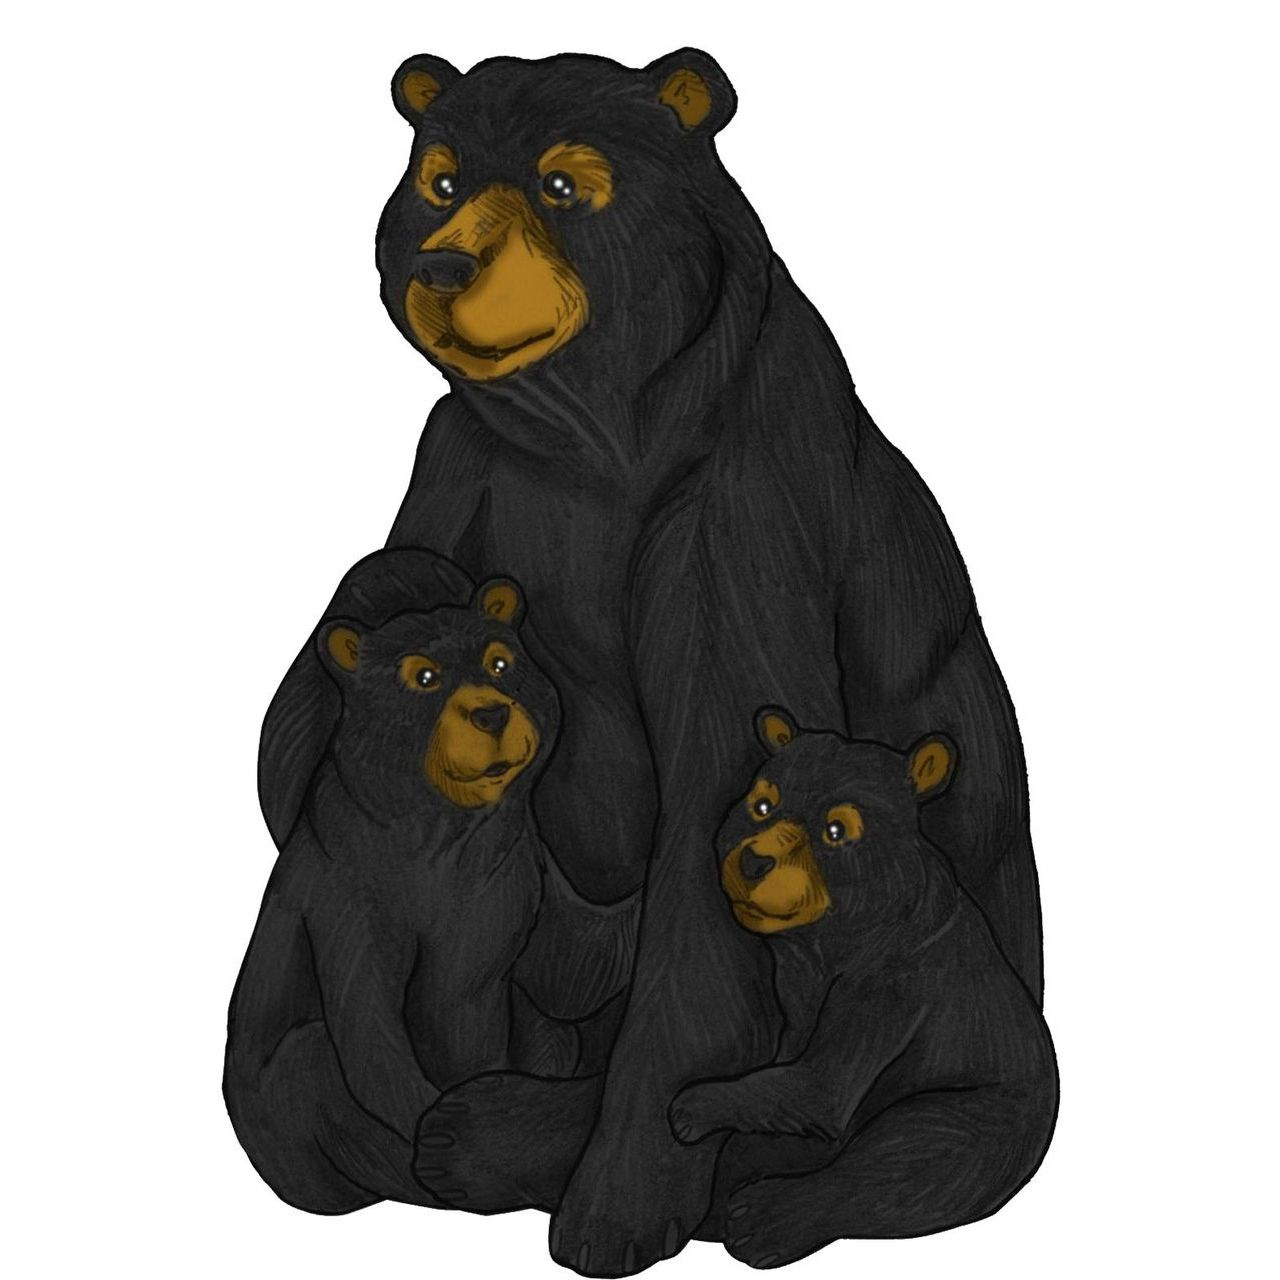 Alpine ZEN734 Sitting Mother Black Bear and Baby Cubs Garden Statue